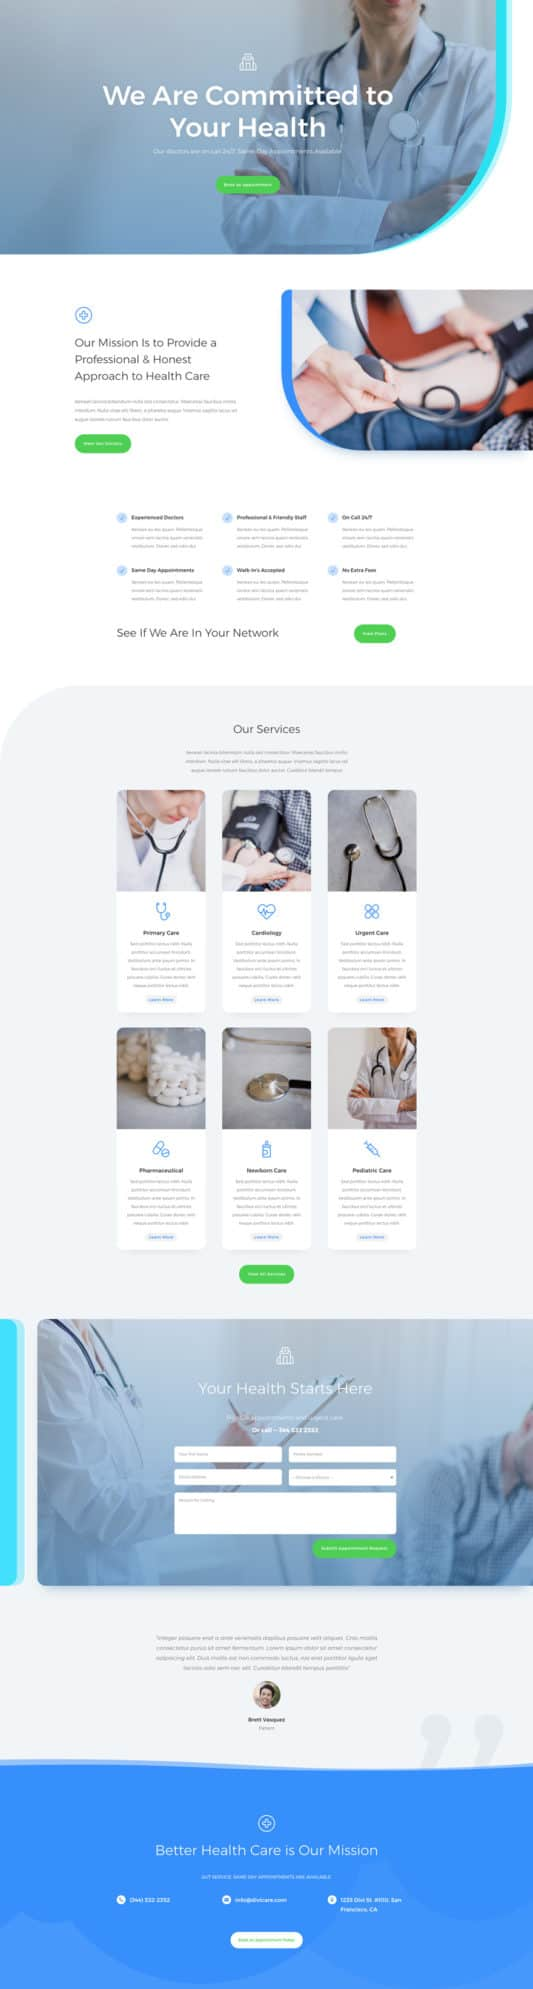 The Doctor's Office Page Style: Homepage Design 1